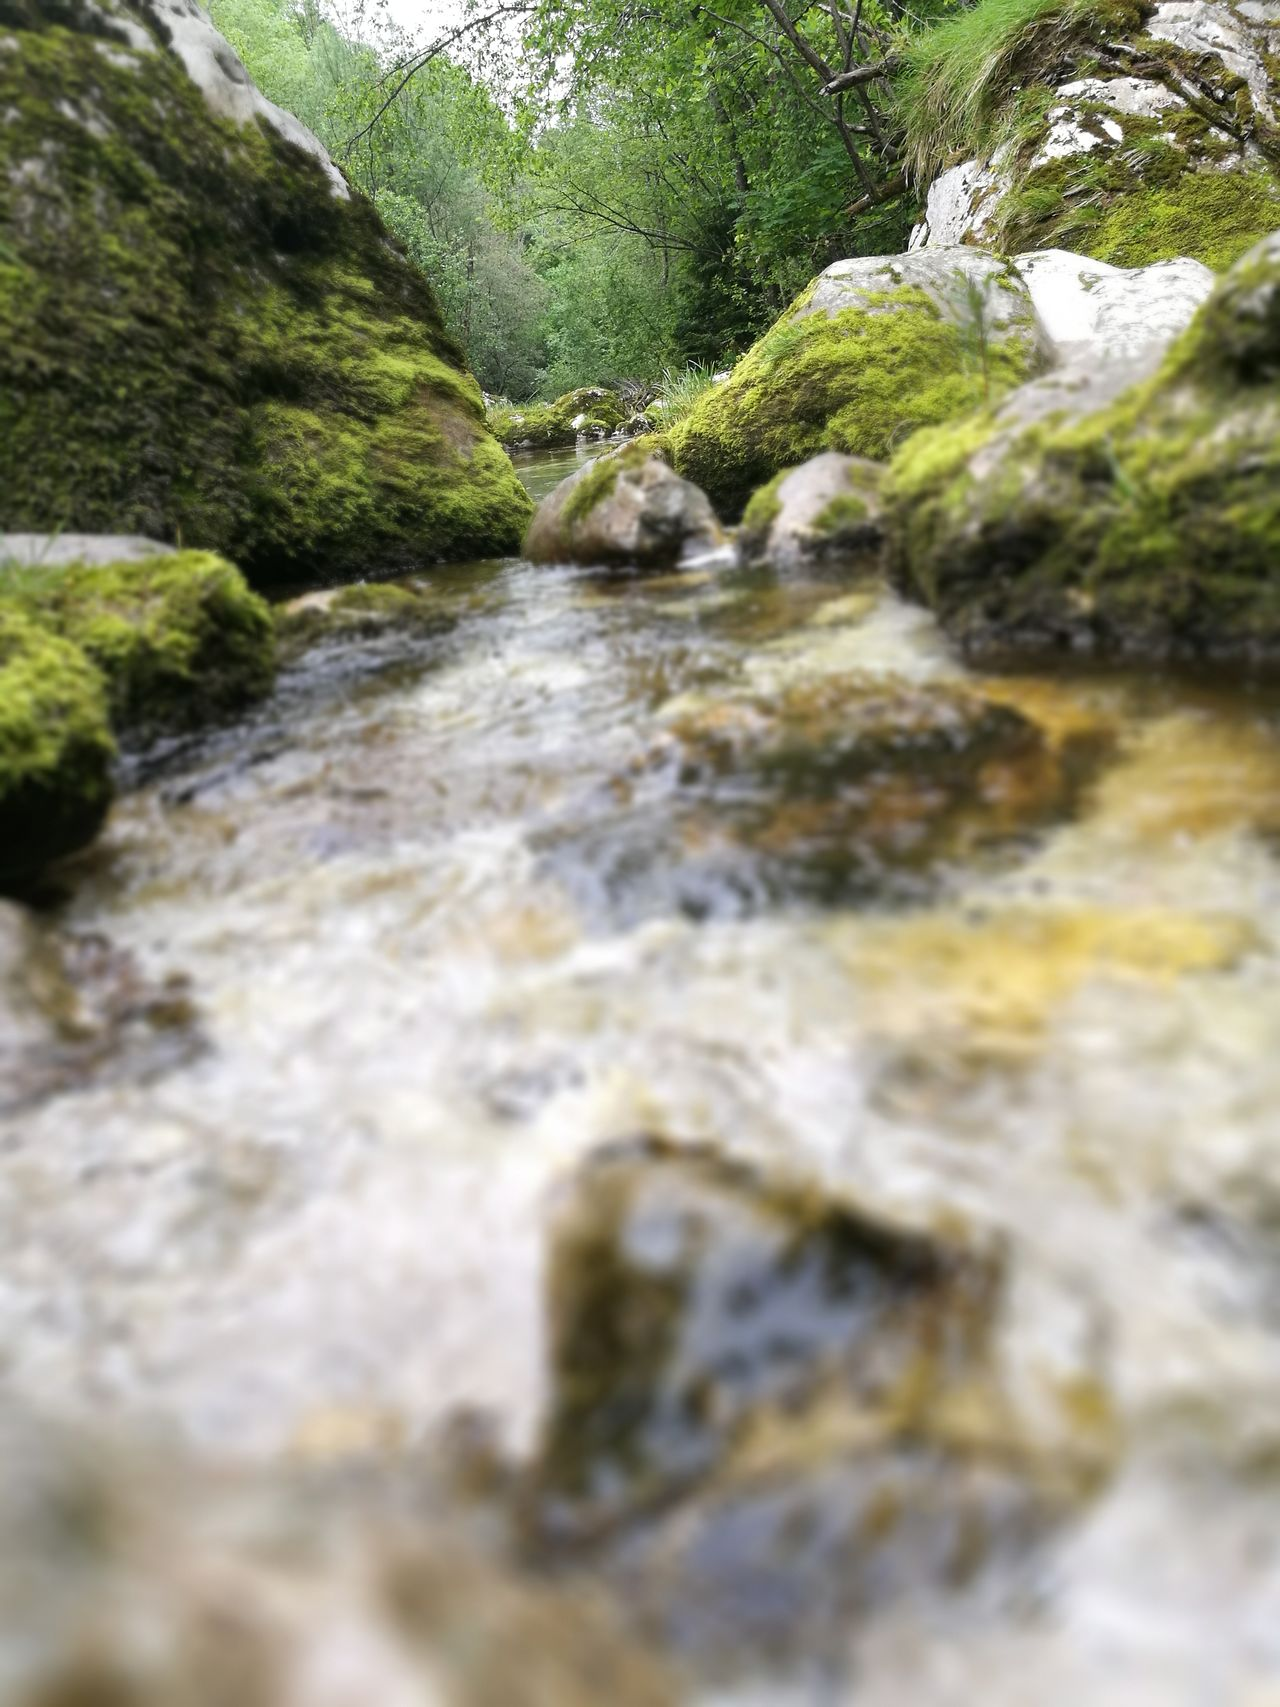 Water Rock - Object Nature Moss Outdoors Beauty In Nature Day River No People Tranquility Waterfall Scenics Forest Tree Close-up Wet Rocks Clean River Fast River The Great Outdoors - 2017 EyeEm Awards Focus On Background The Purist (no Edit, No Filter)